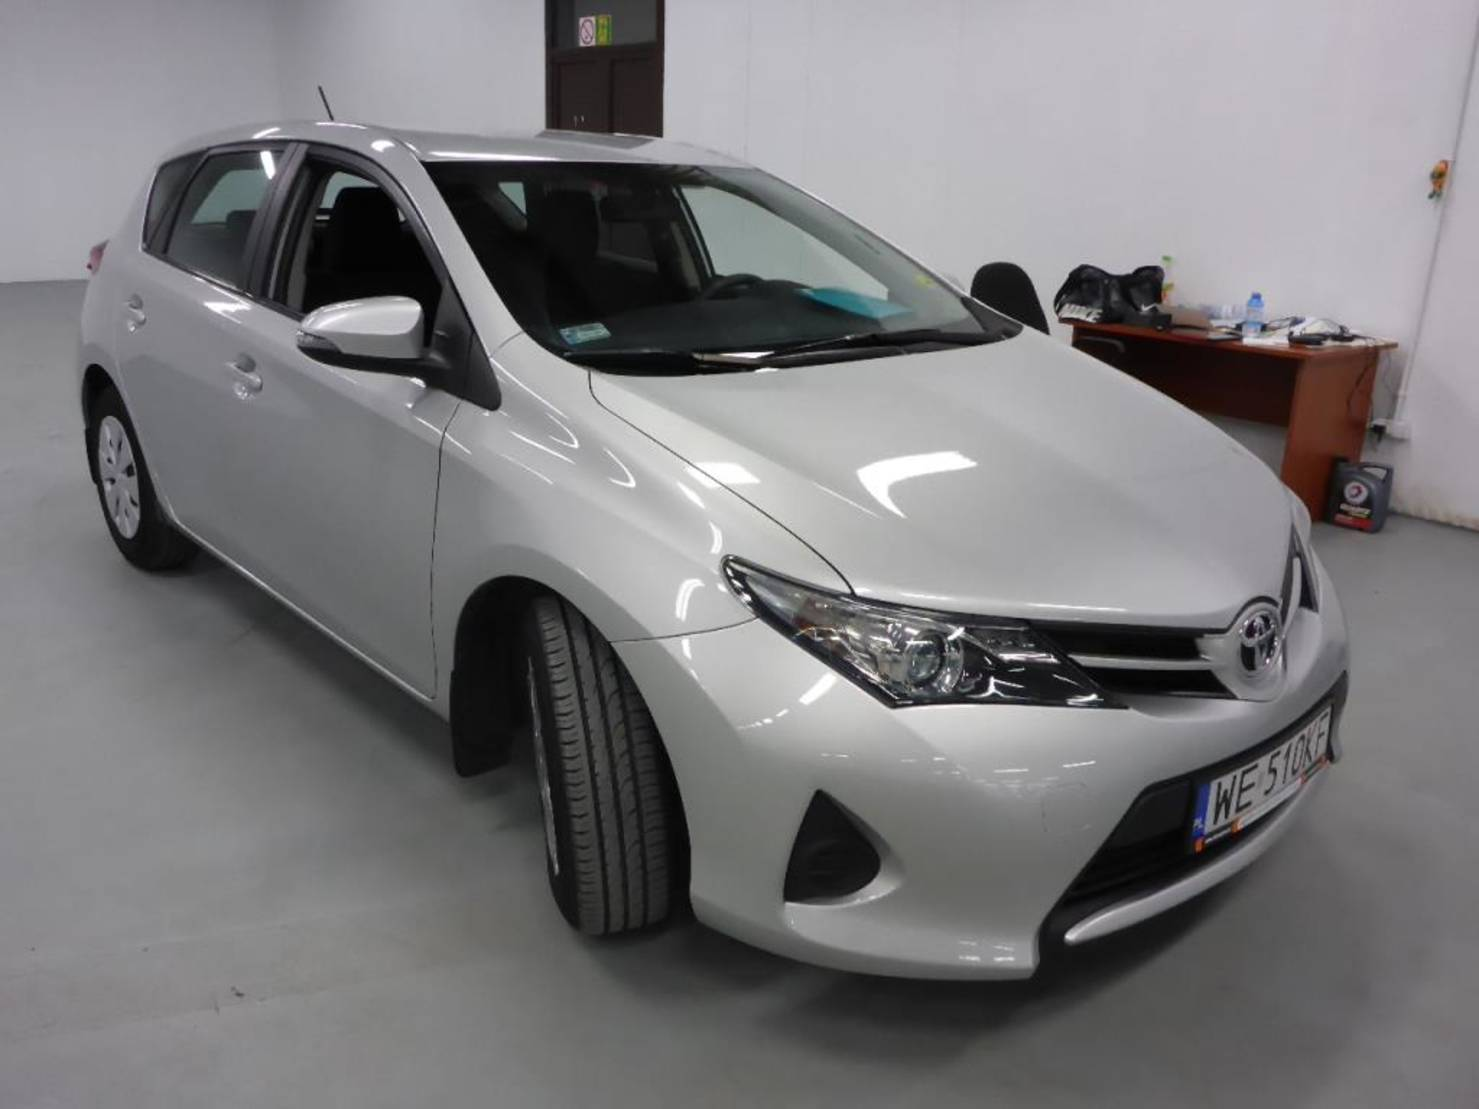 Toyota Auris 1.4 D-4d 90km Active Salon PL detail2